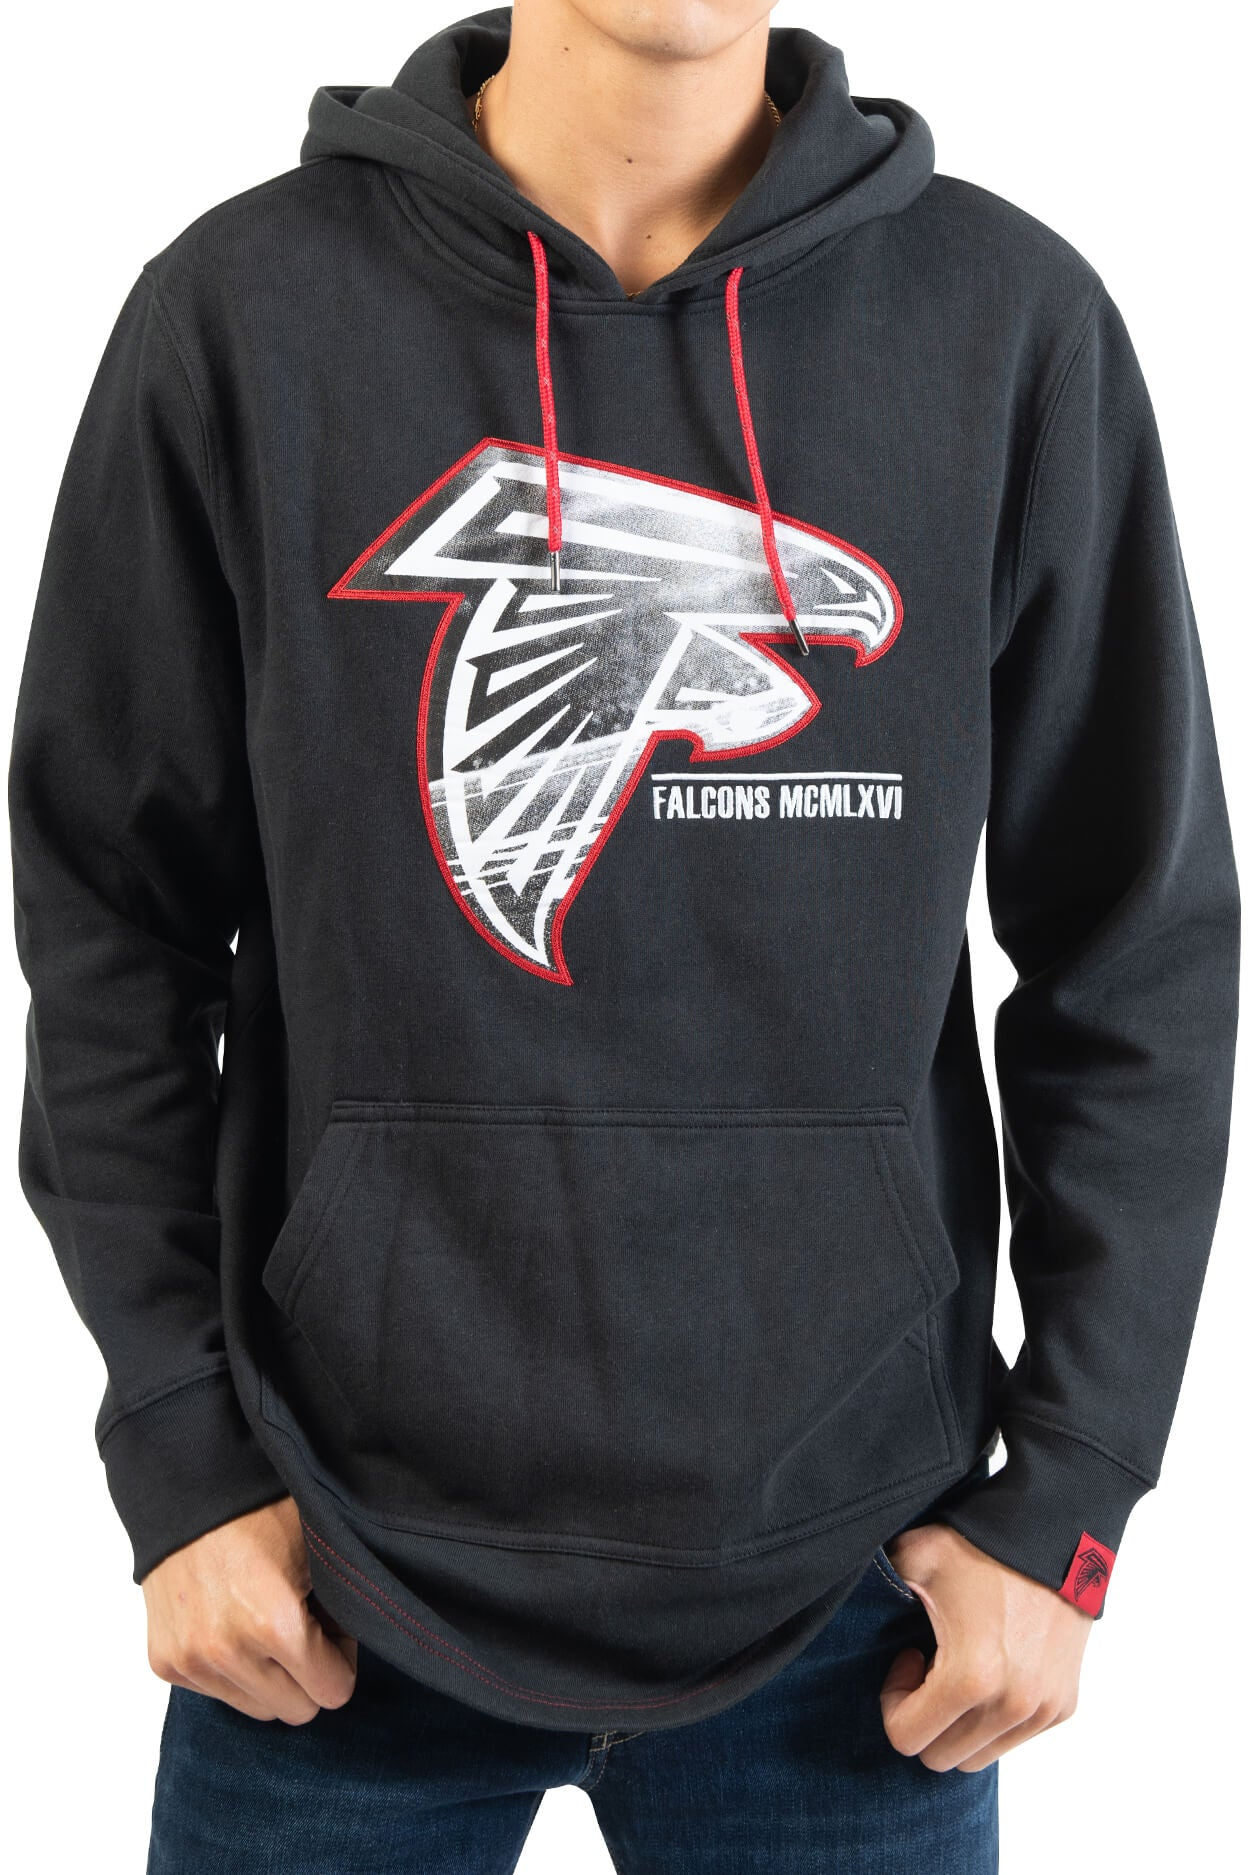 NFL Atlanta Falcons Men's Embroidered Hoodie|Atlanta Falcons